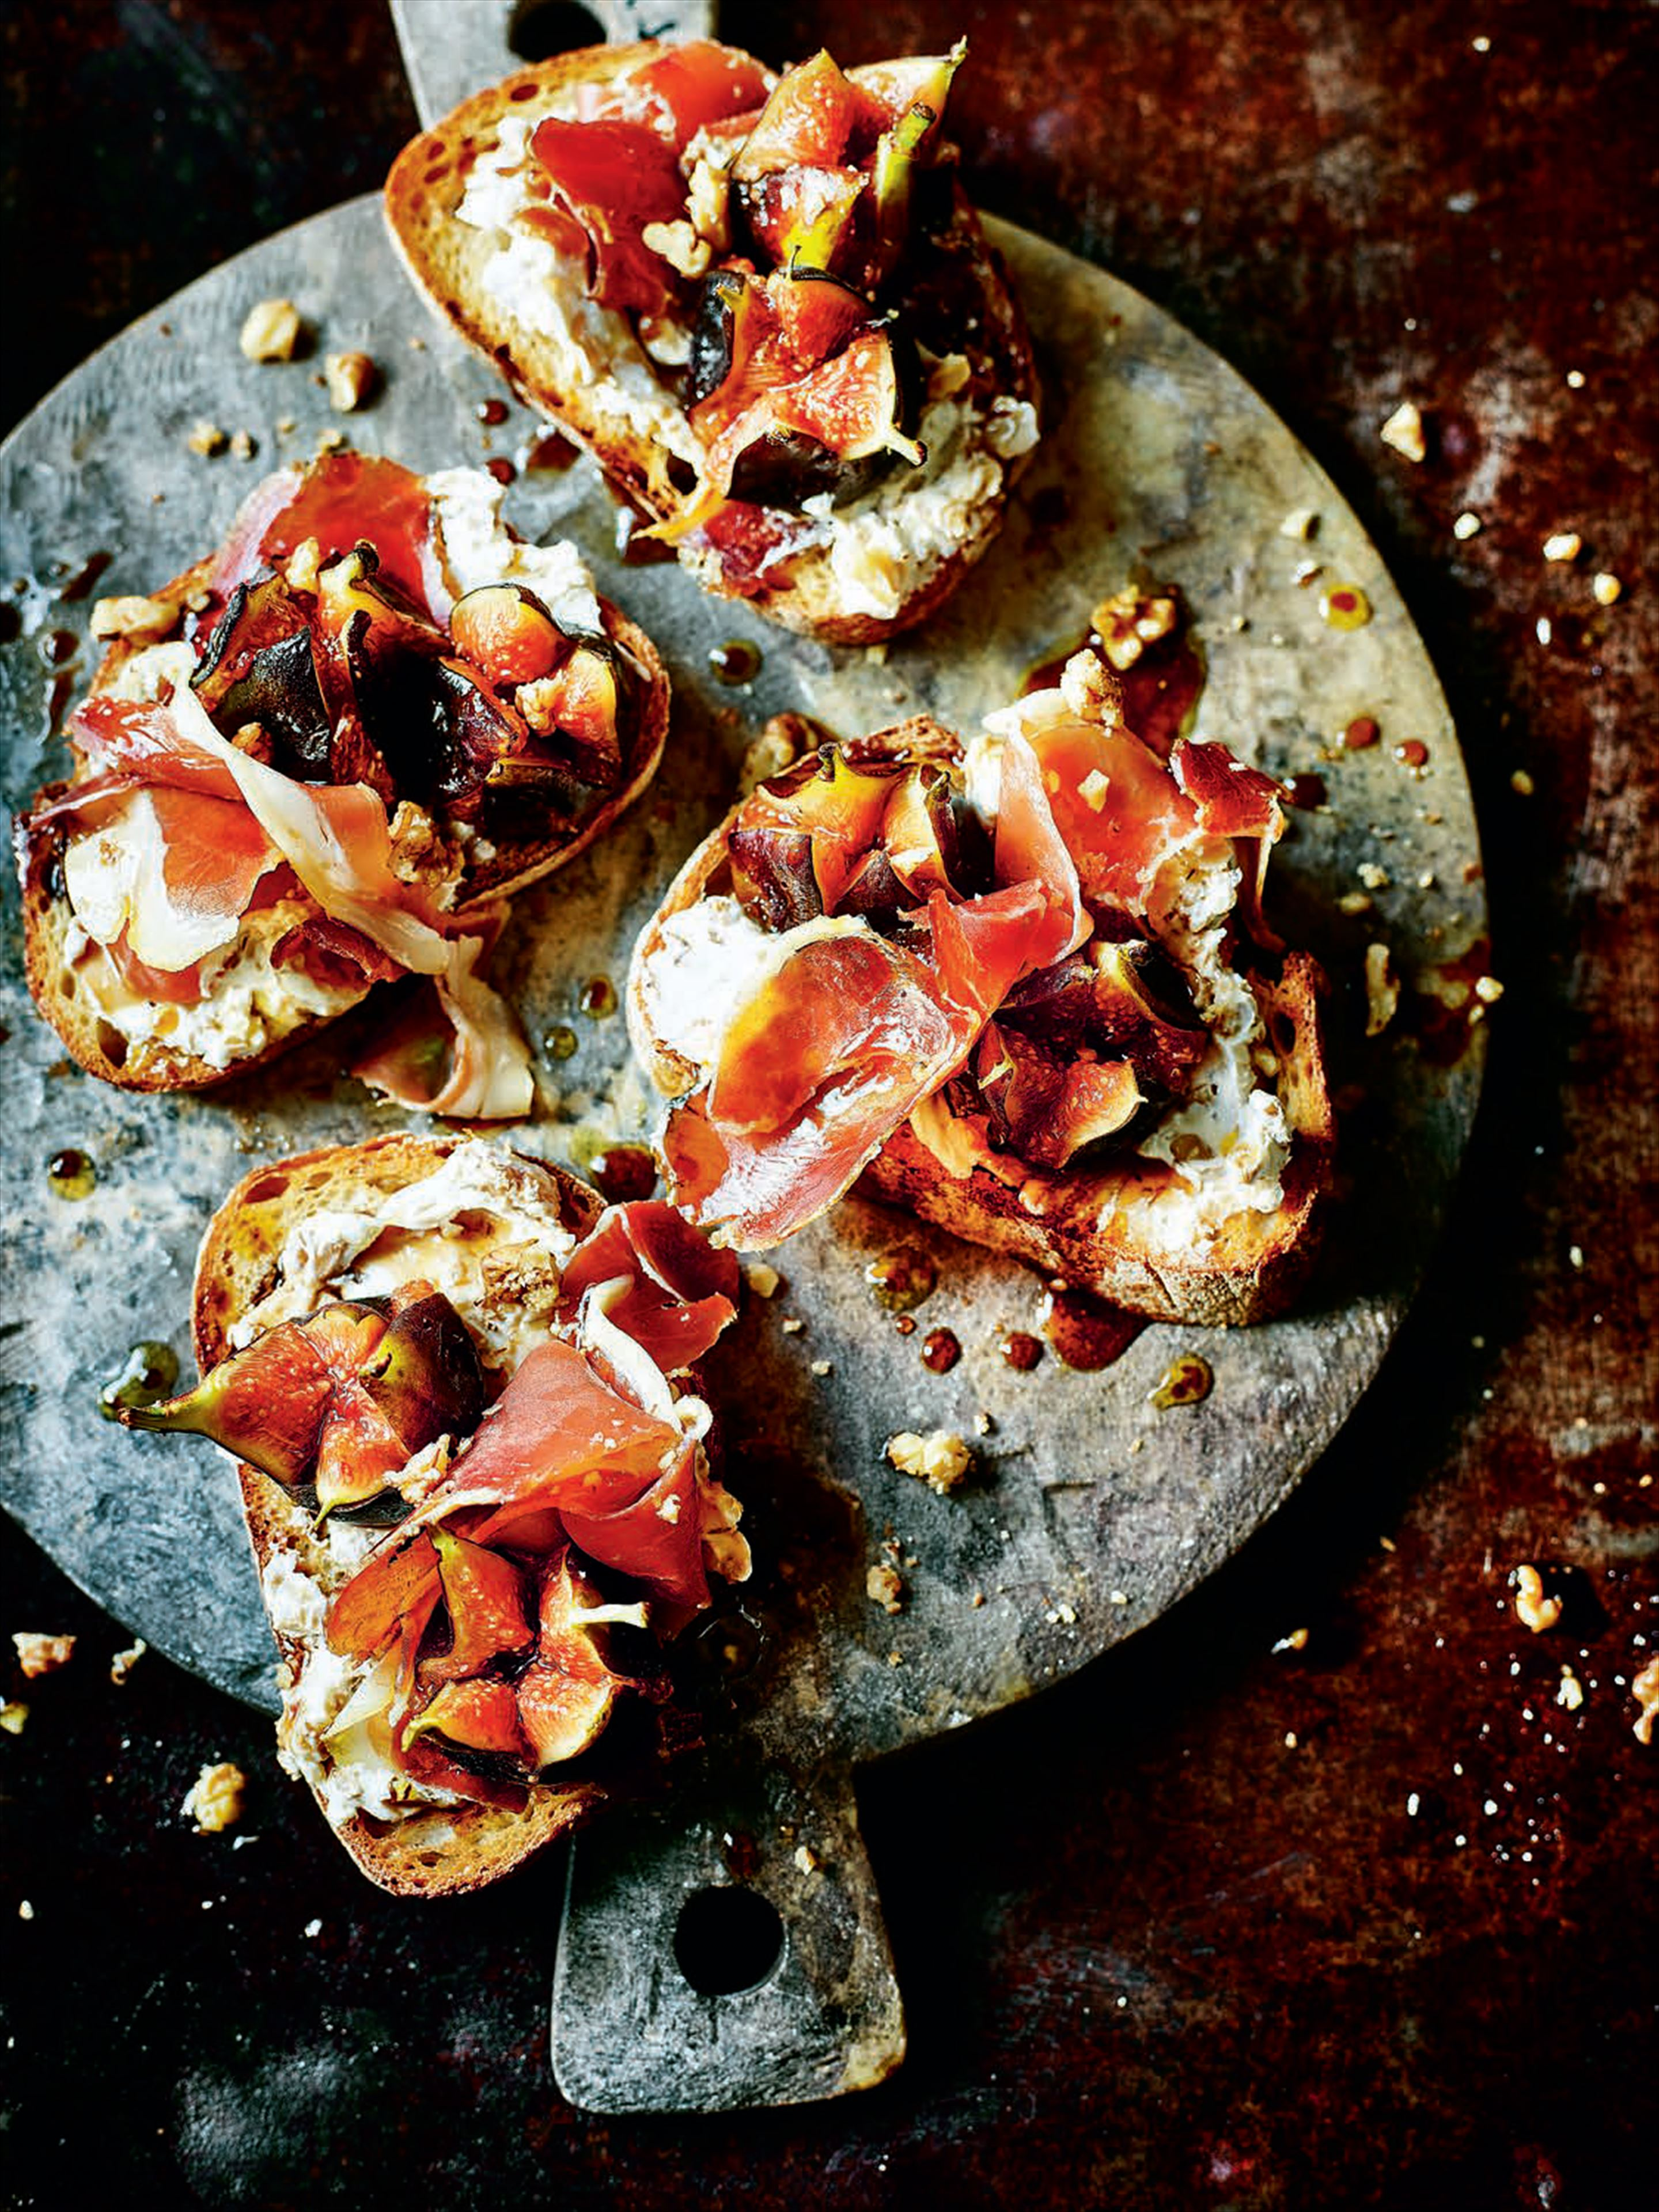 Pan-fried figs, serrano ham, cream cheese and walnuts on toast